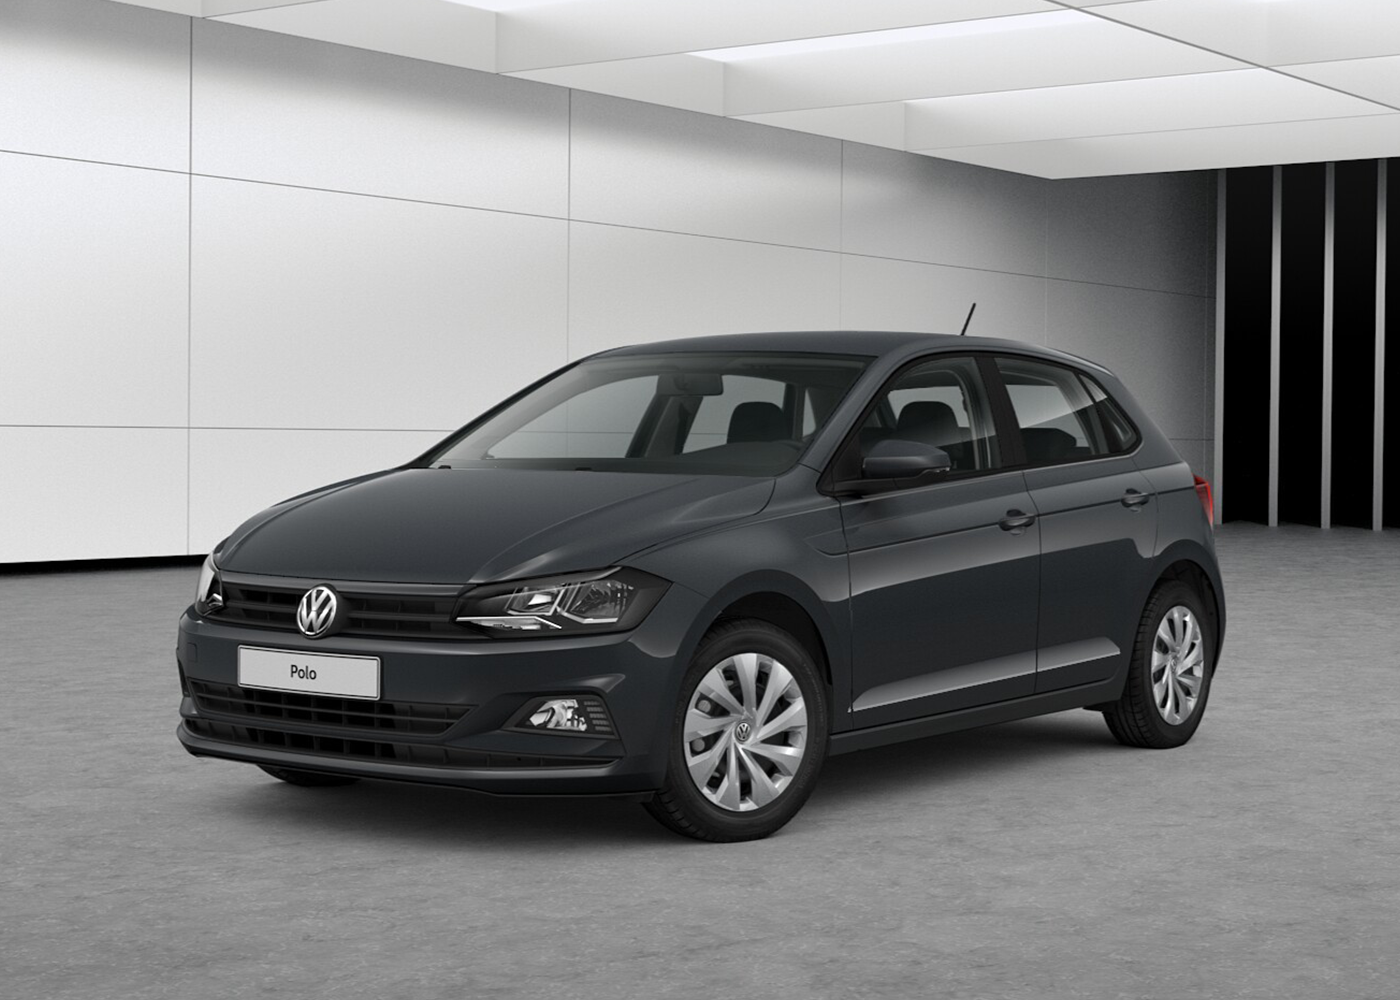 volkswagen polo 1 0 mpi 5p trendline bluemotion technology grigio urano km0 a soli 13406 su. Black Bedroom Furniture Sets. Home Design Ideas